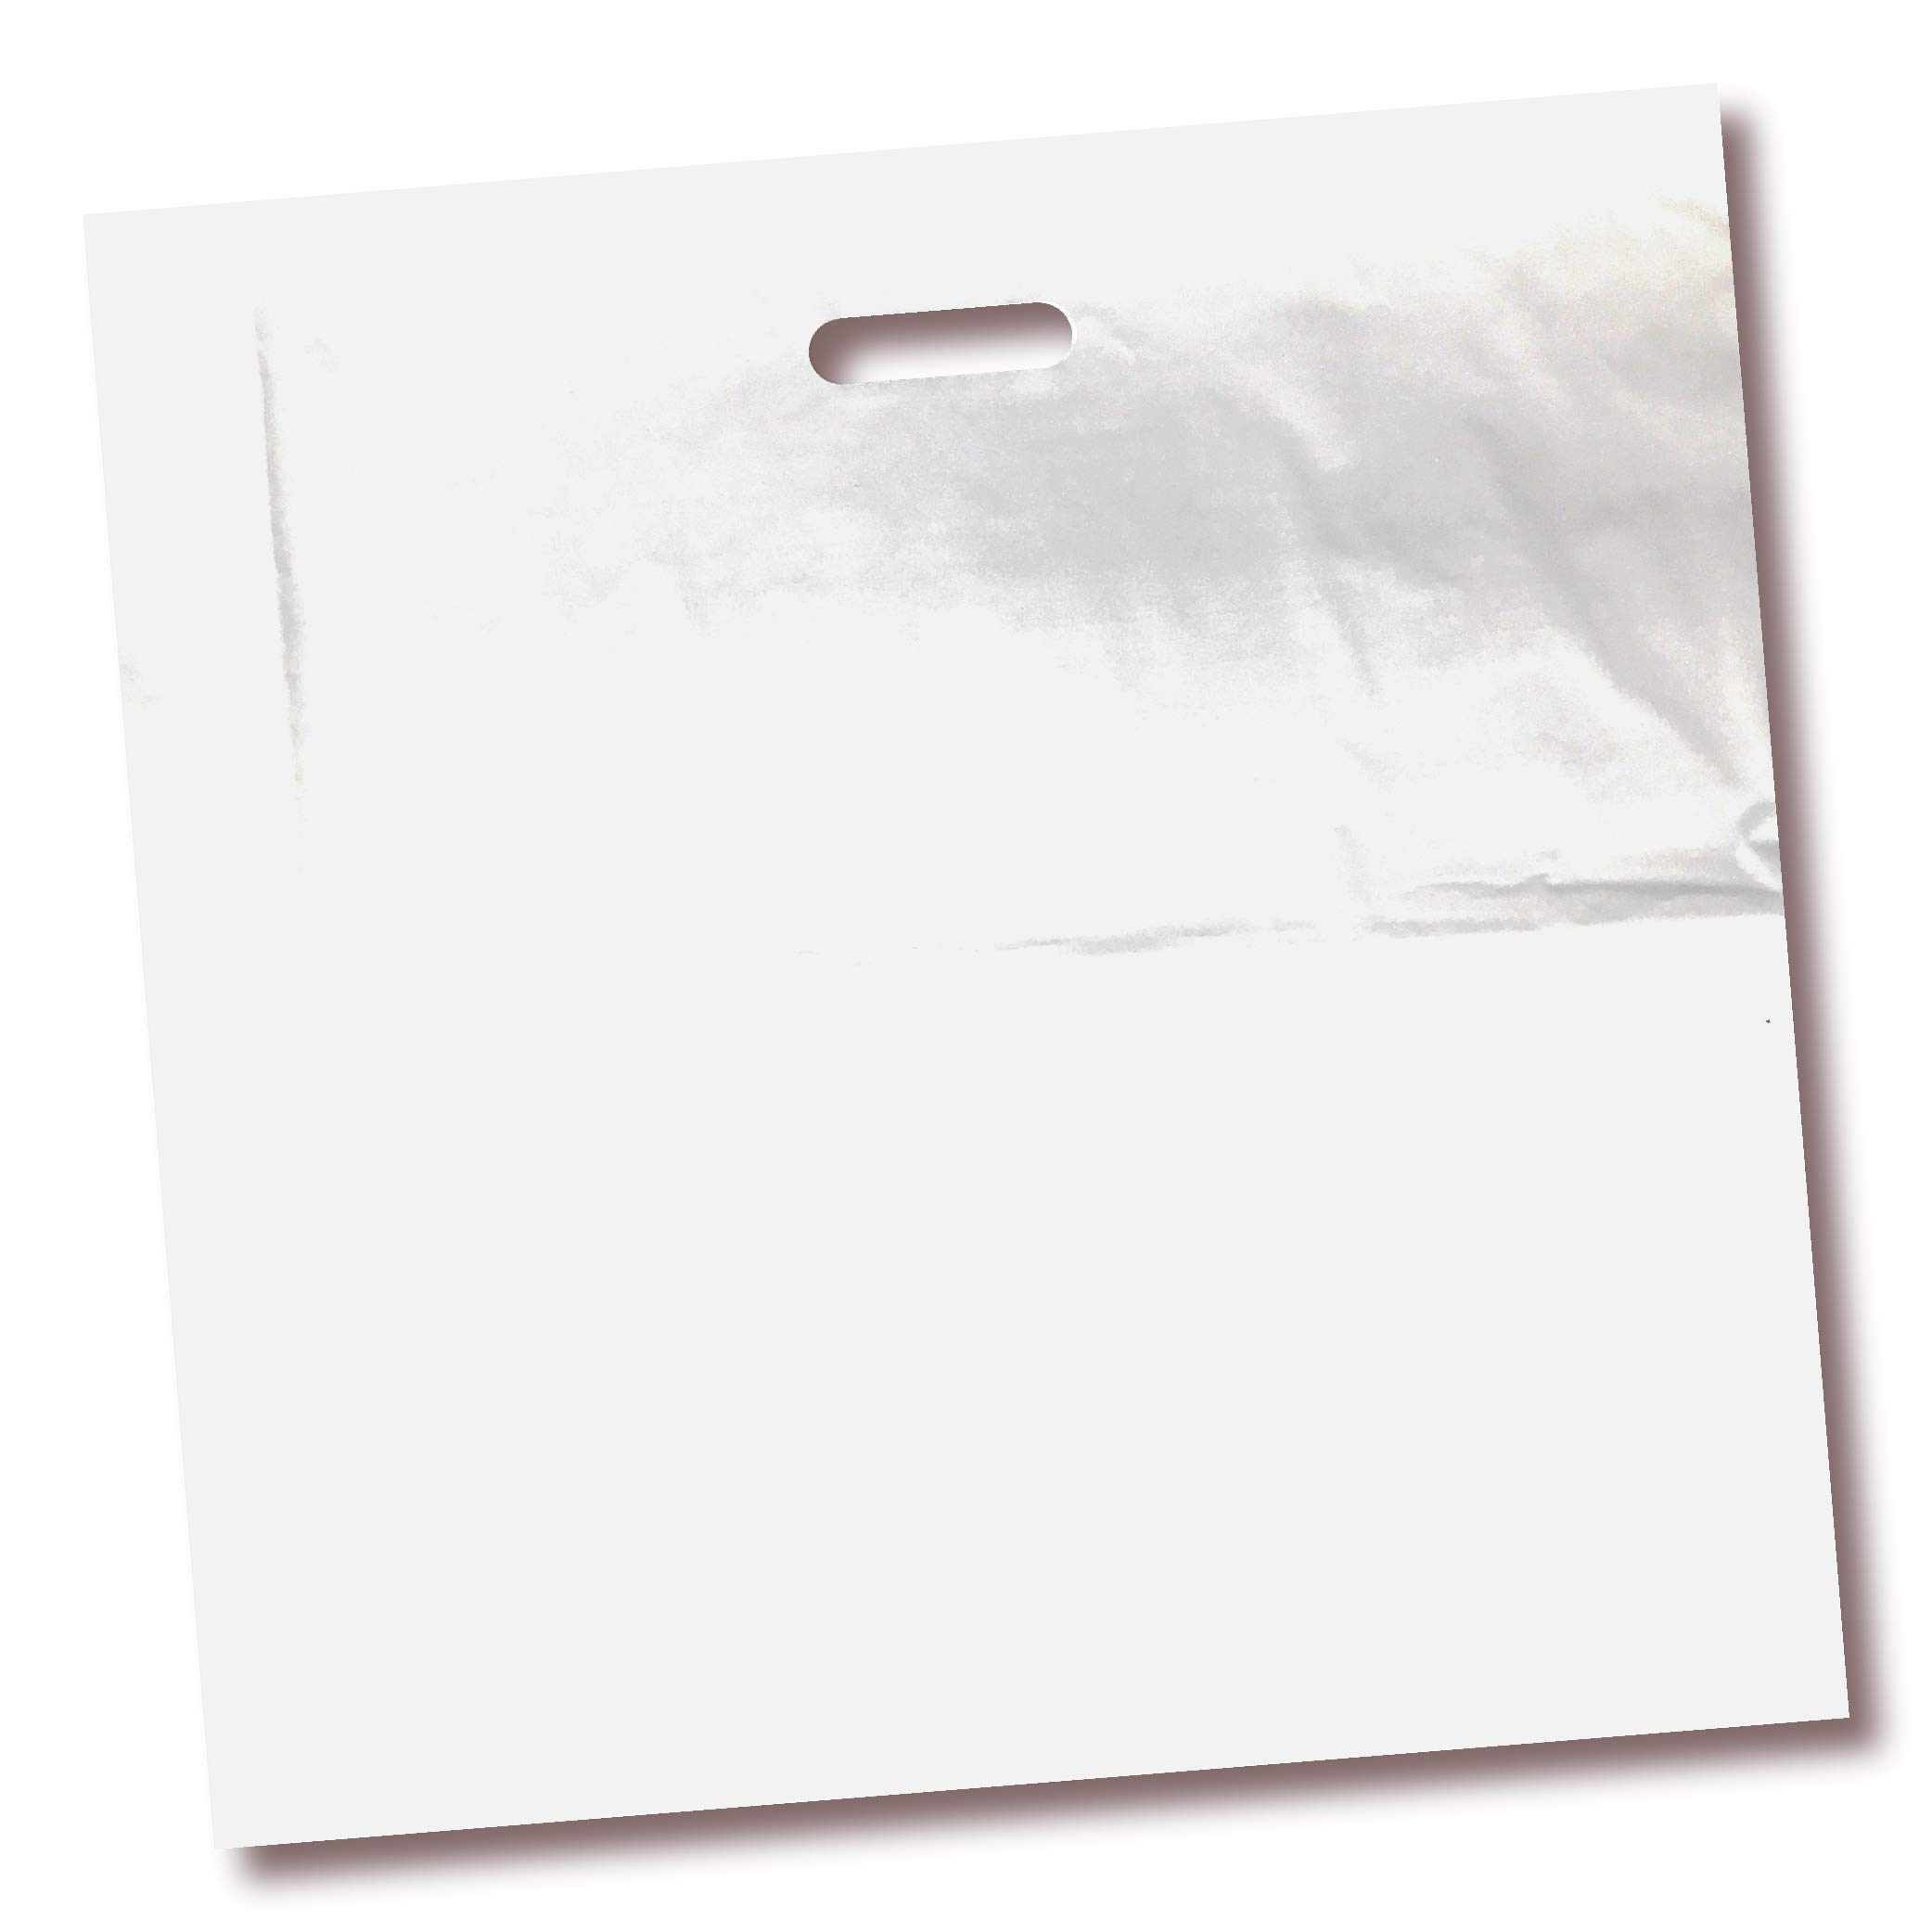 100 Pack 20'' x 20'' with 2 mil Thick Extra Large White Merchandise Plastic Glossy Retail Bags | Die Cut Handles | Perfect for Shopping, Large Packages, Children Toys | Color White | 100% Recyclable by Popular Plastic Bags (Image #1)